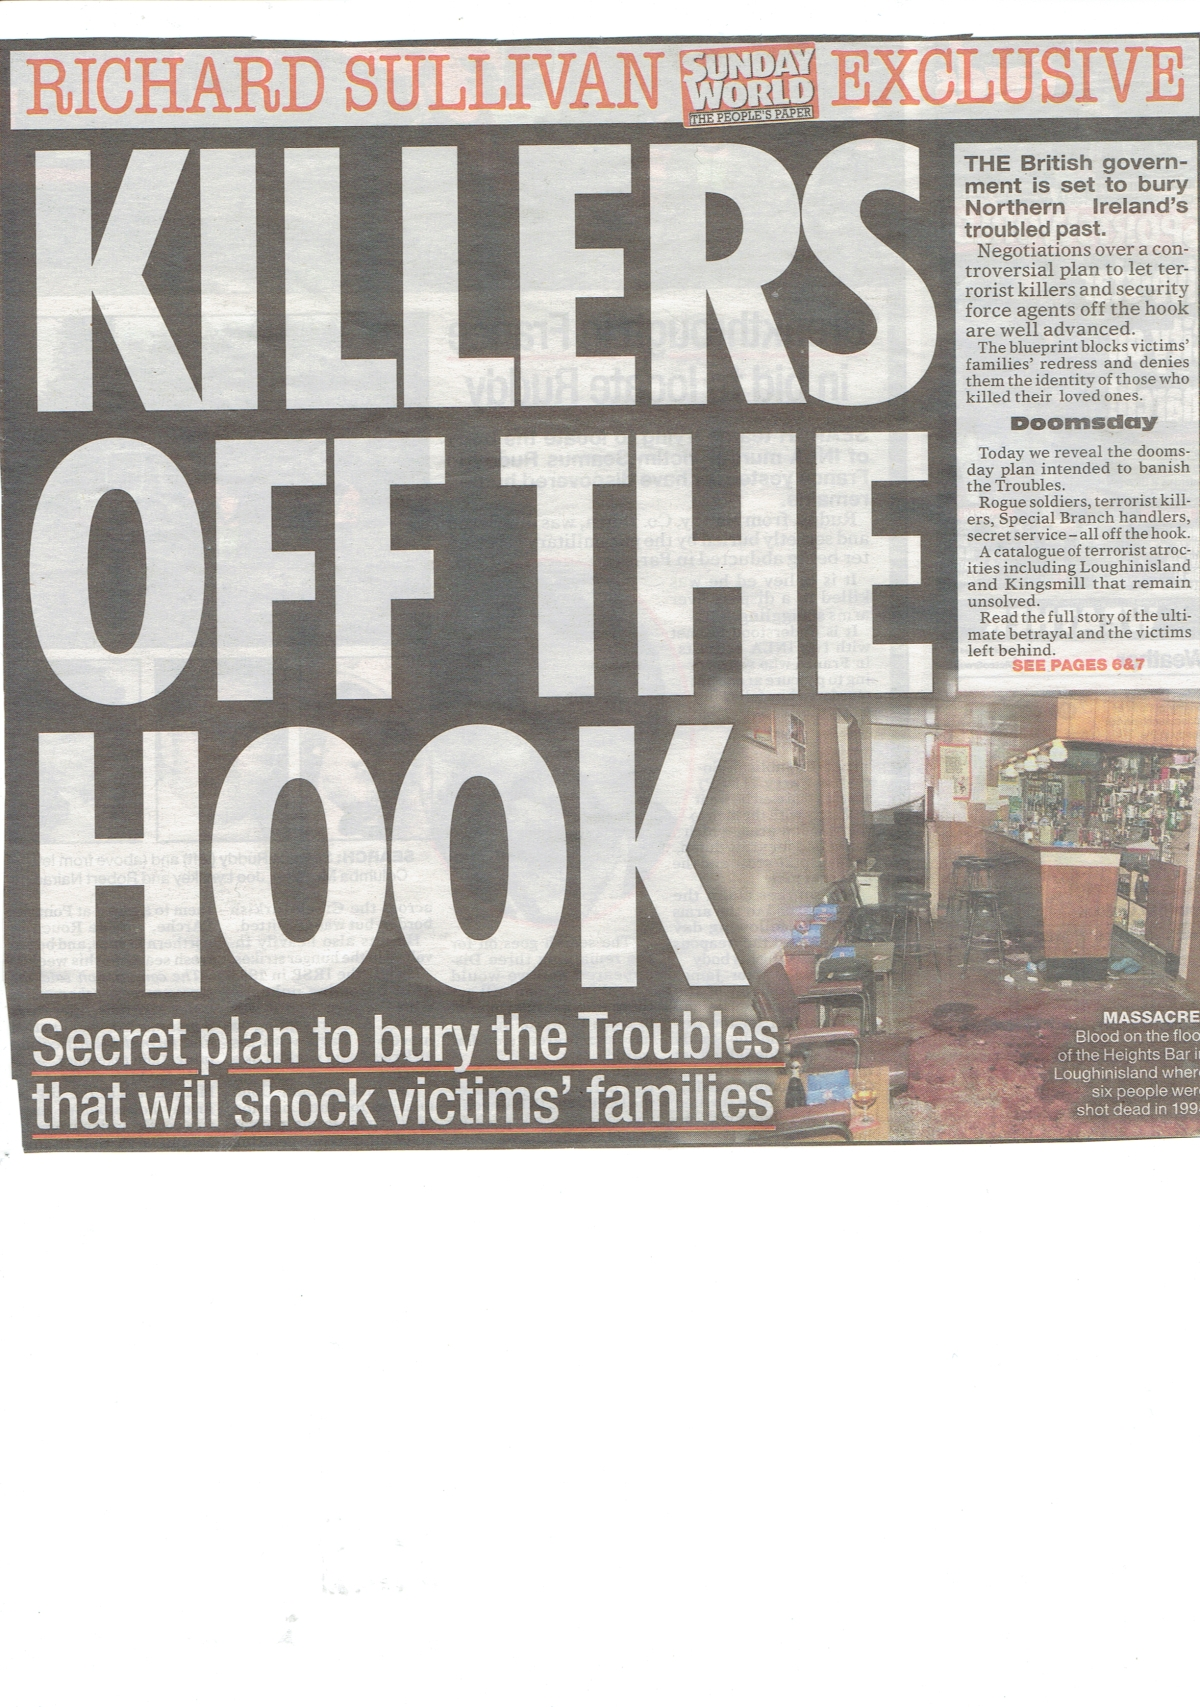 This was headline news yesterday in the Sunday World – I just hope & pray that it's bullshit.